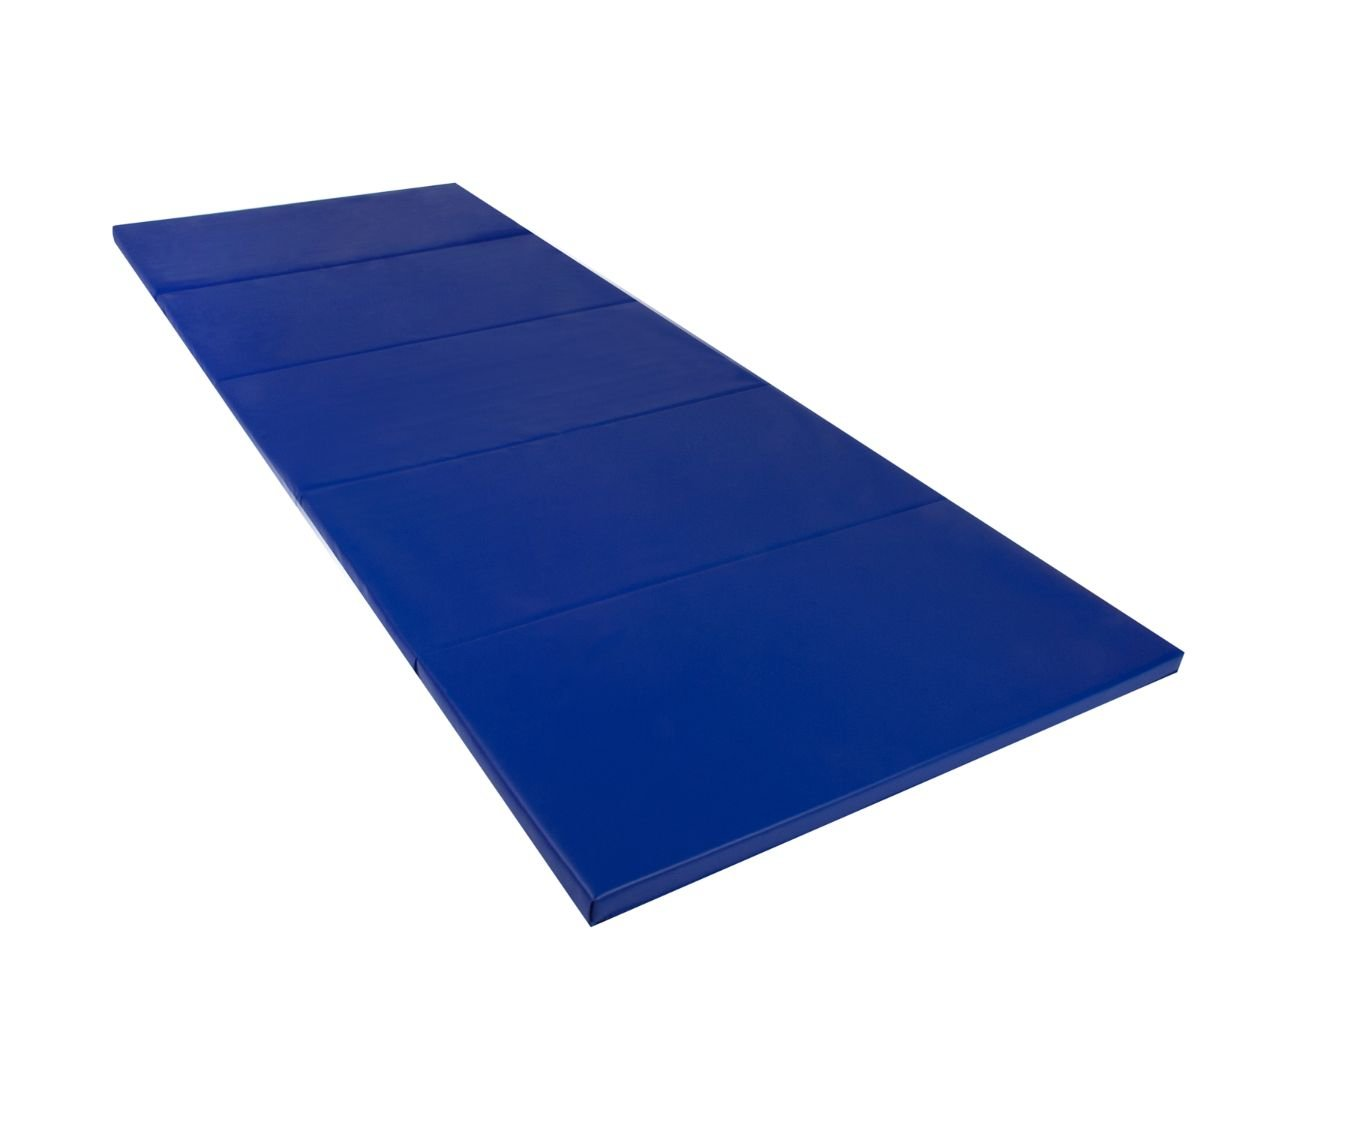 Water bed for patients - Cannons Uk Foldable Gymnastics Mat Blue 10 Ft X 4 Ft X 50 Mm Amazon Co Uk Sports Outdoors